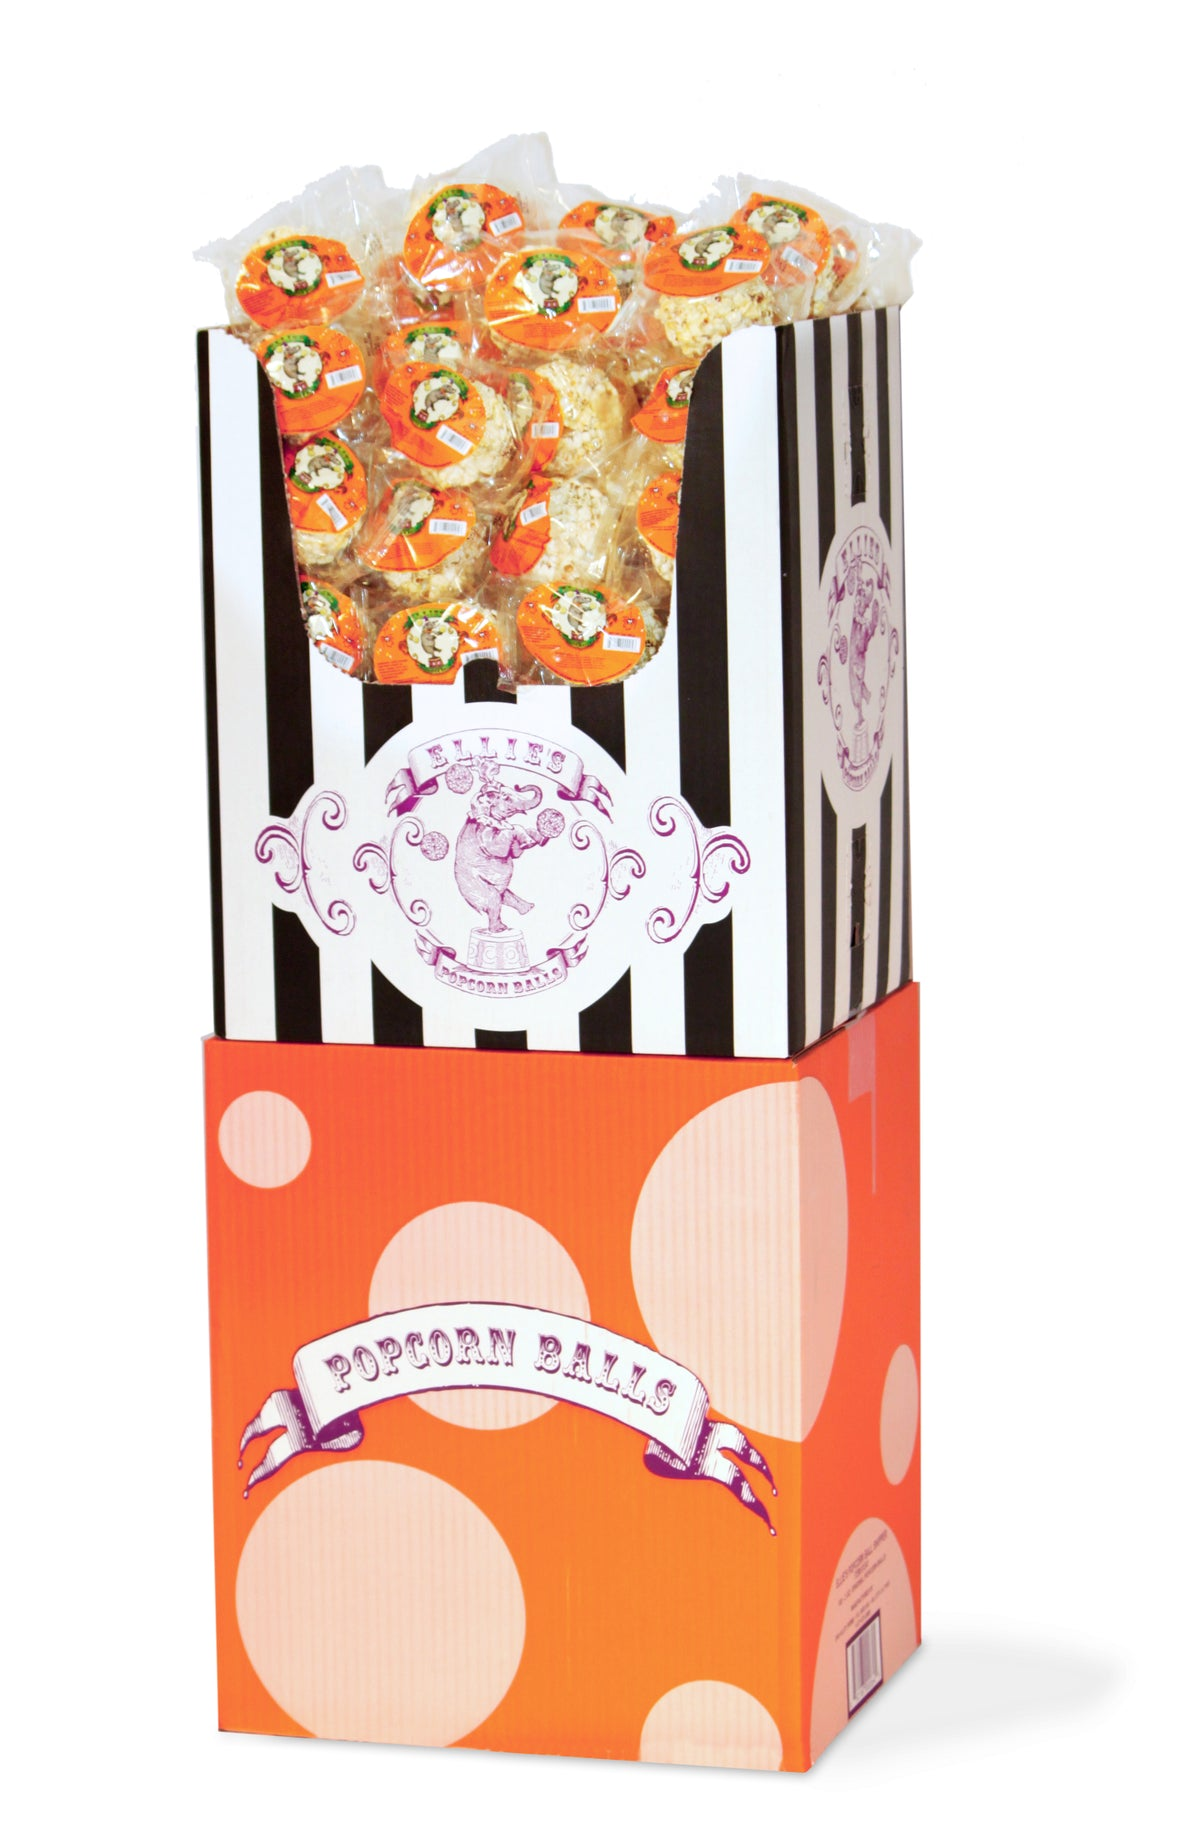 Ellie's - Original Popcorn Ball Halloween Shipper